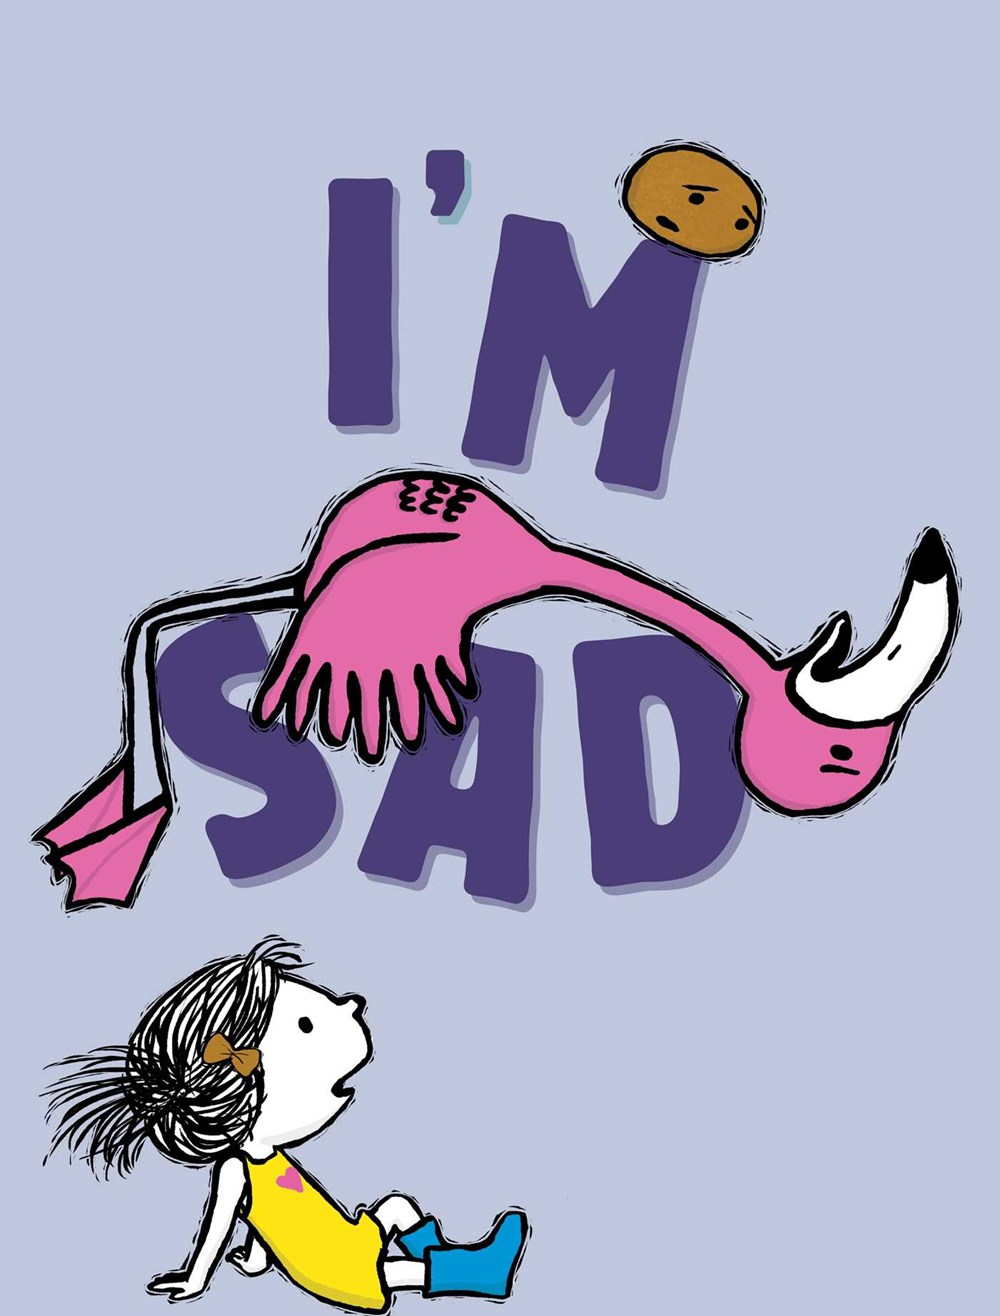 Kids' Book Launch: I'M SAD by Michael Ian Black & Debbie Ridpath Ohi